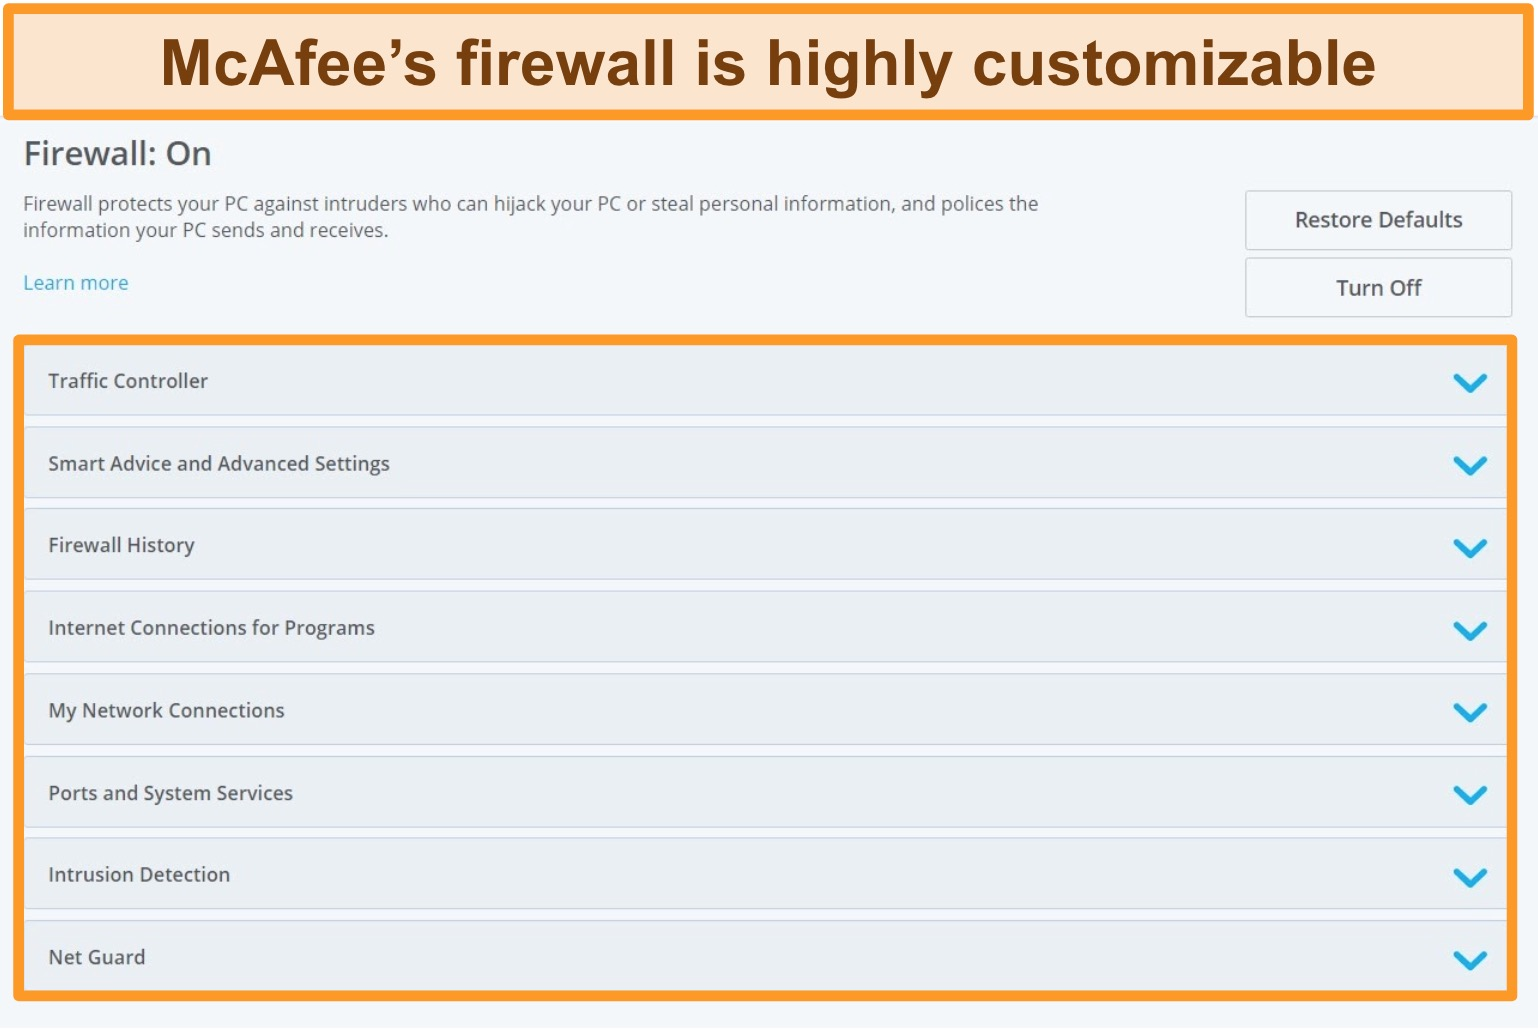 Screenshot of McAfee's Firewall features